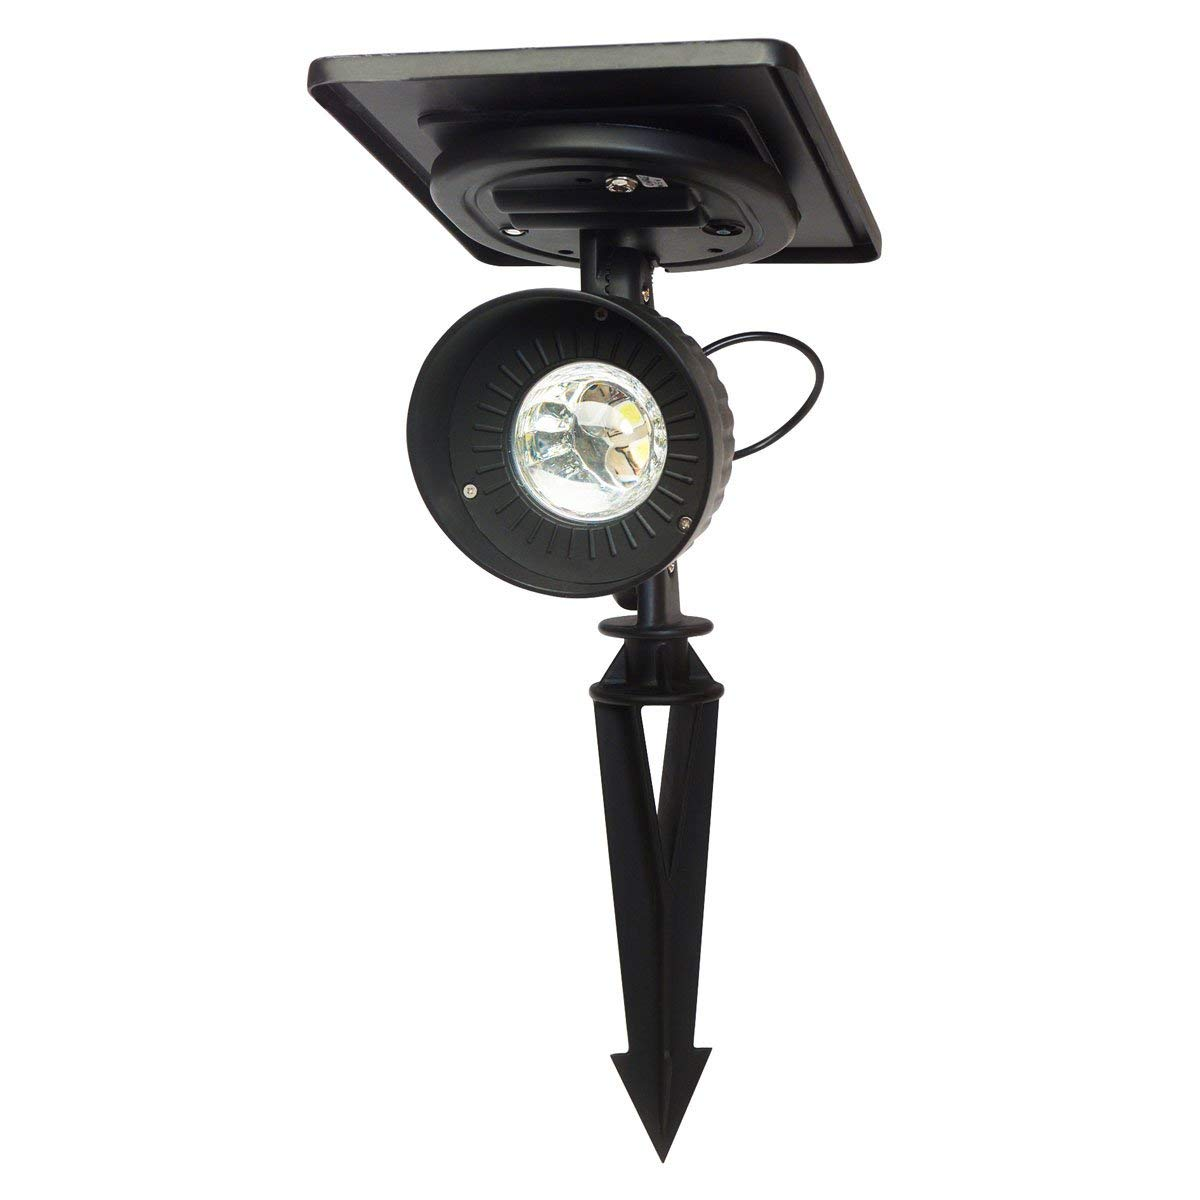 Gama Sonic Progressive Solar Outdoor Garden and Landscape LED Spotlight, Bright-White LED GS-103 - Black Finish